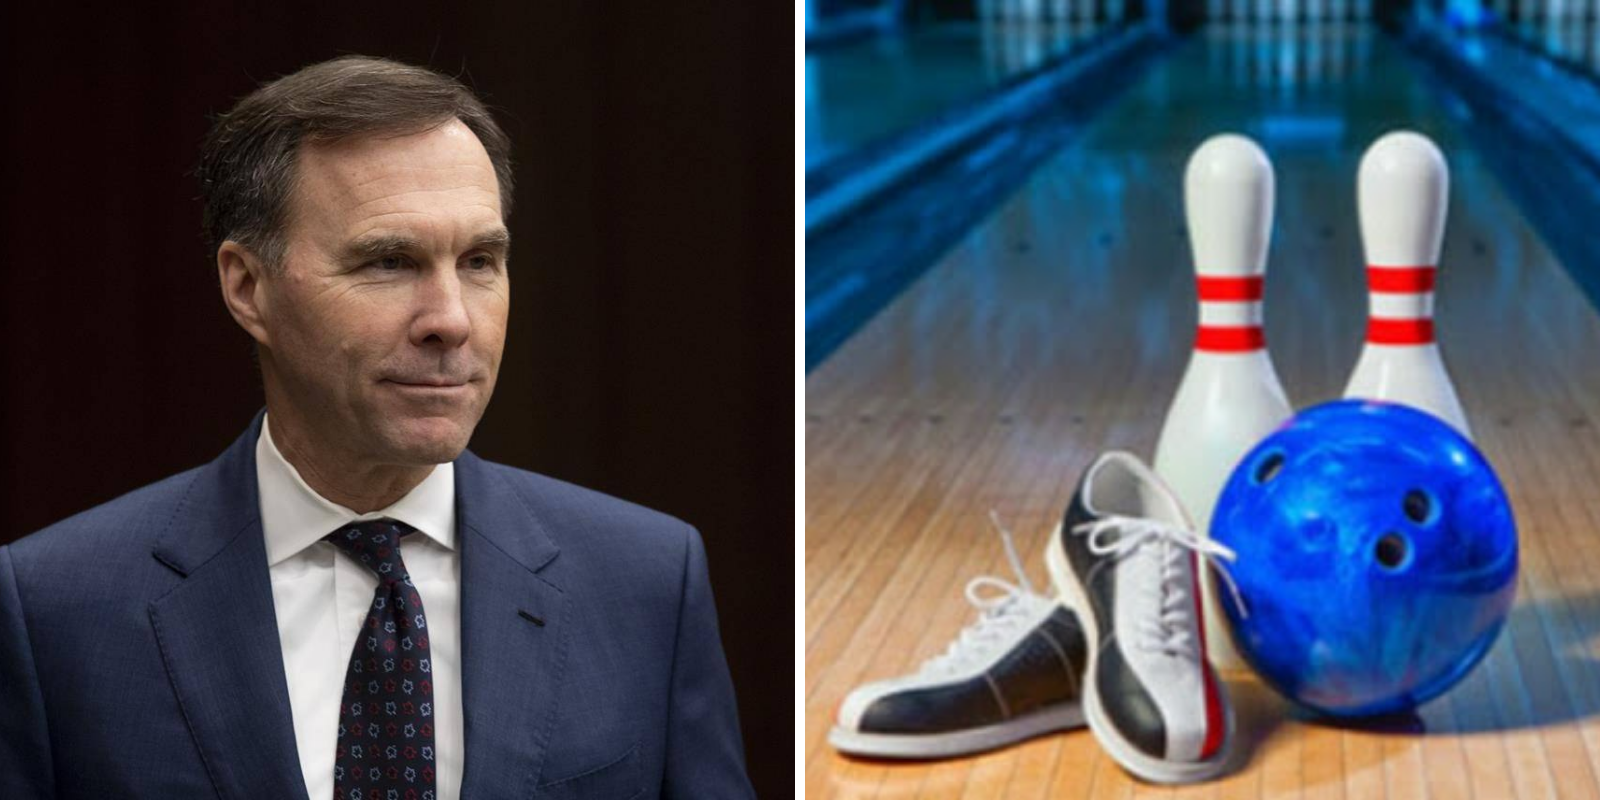 Federal bureaucrats spend $6,000 in taxpayer money on bowling party